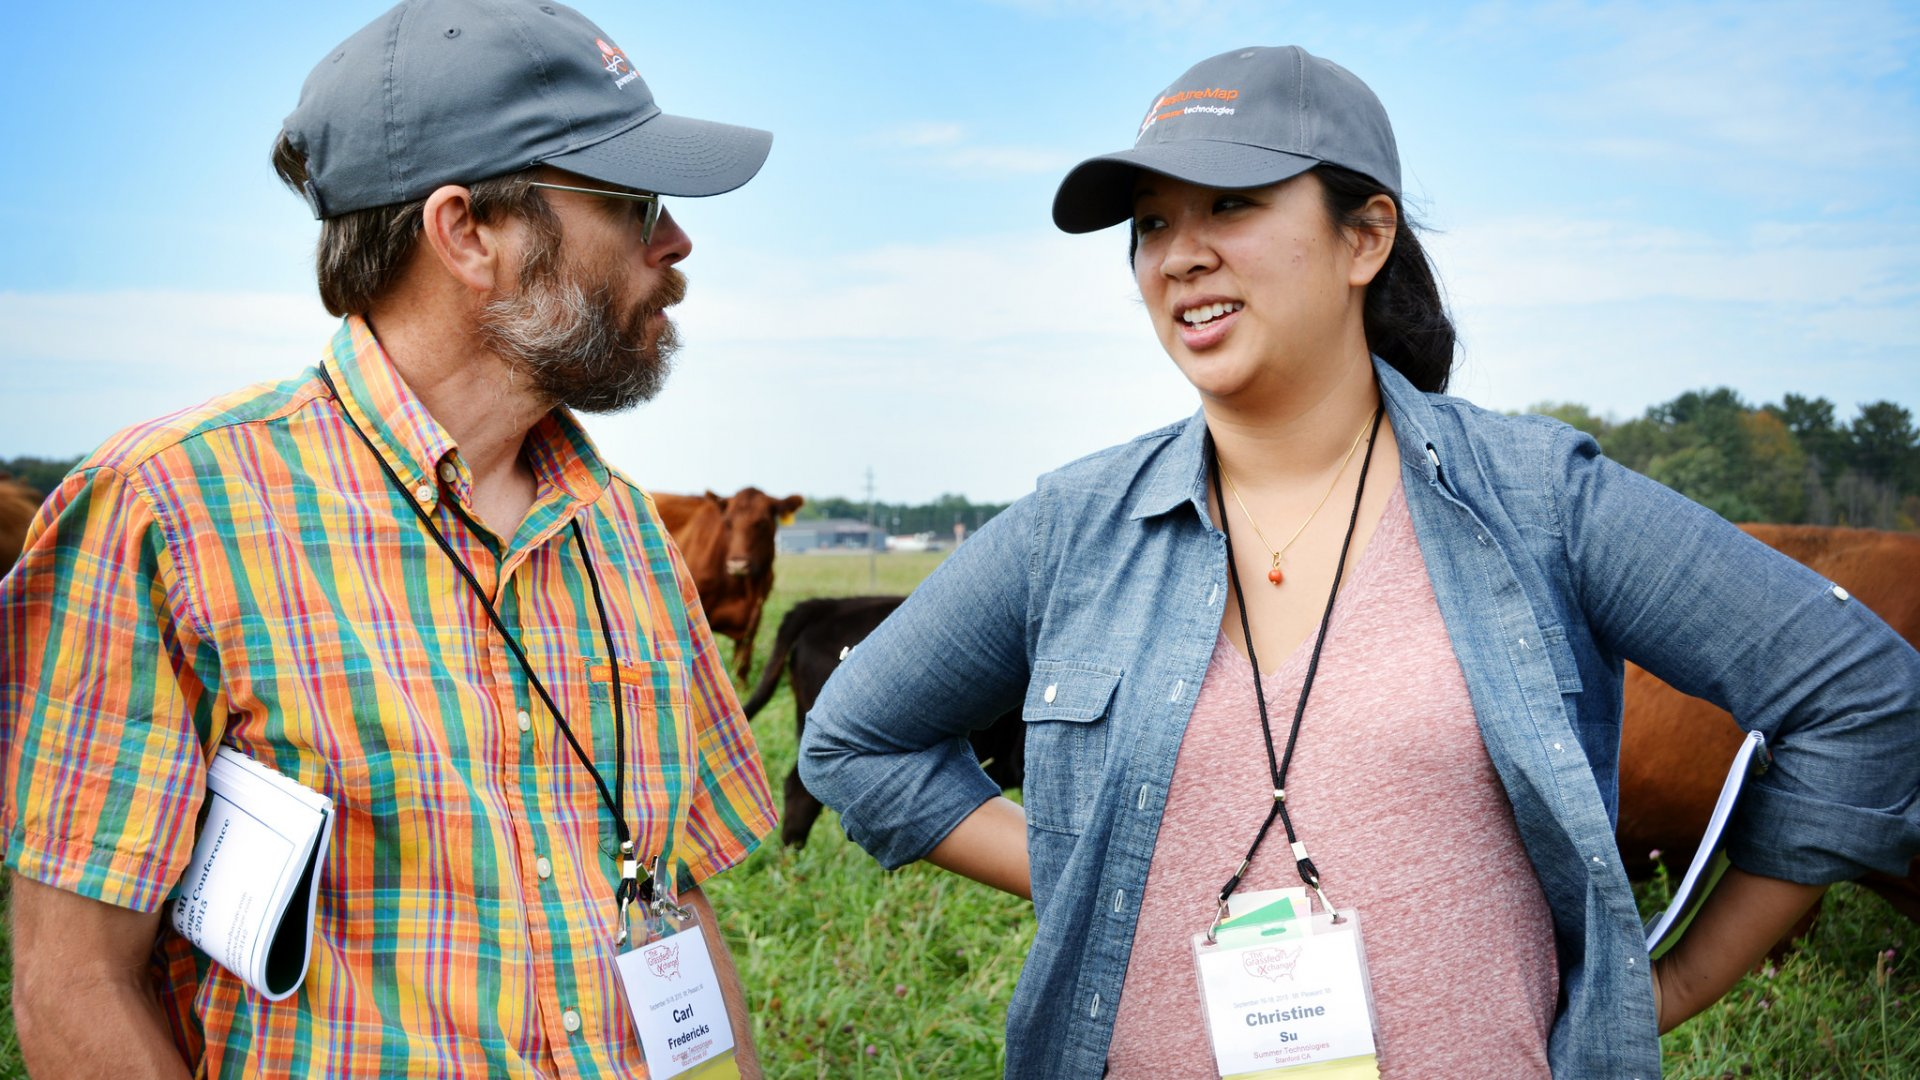 Christine Su, founder of PastureMap and a 2016 Echoing Green fellow, discusses optimal grass species with a grazing consultant.